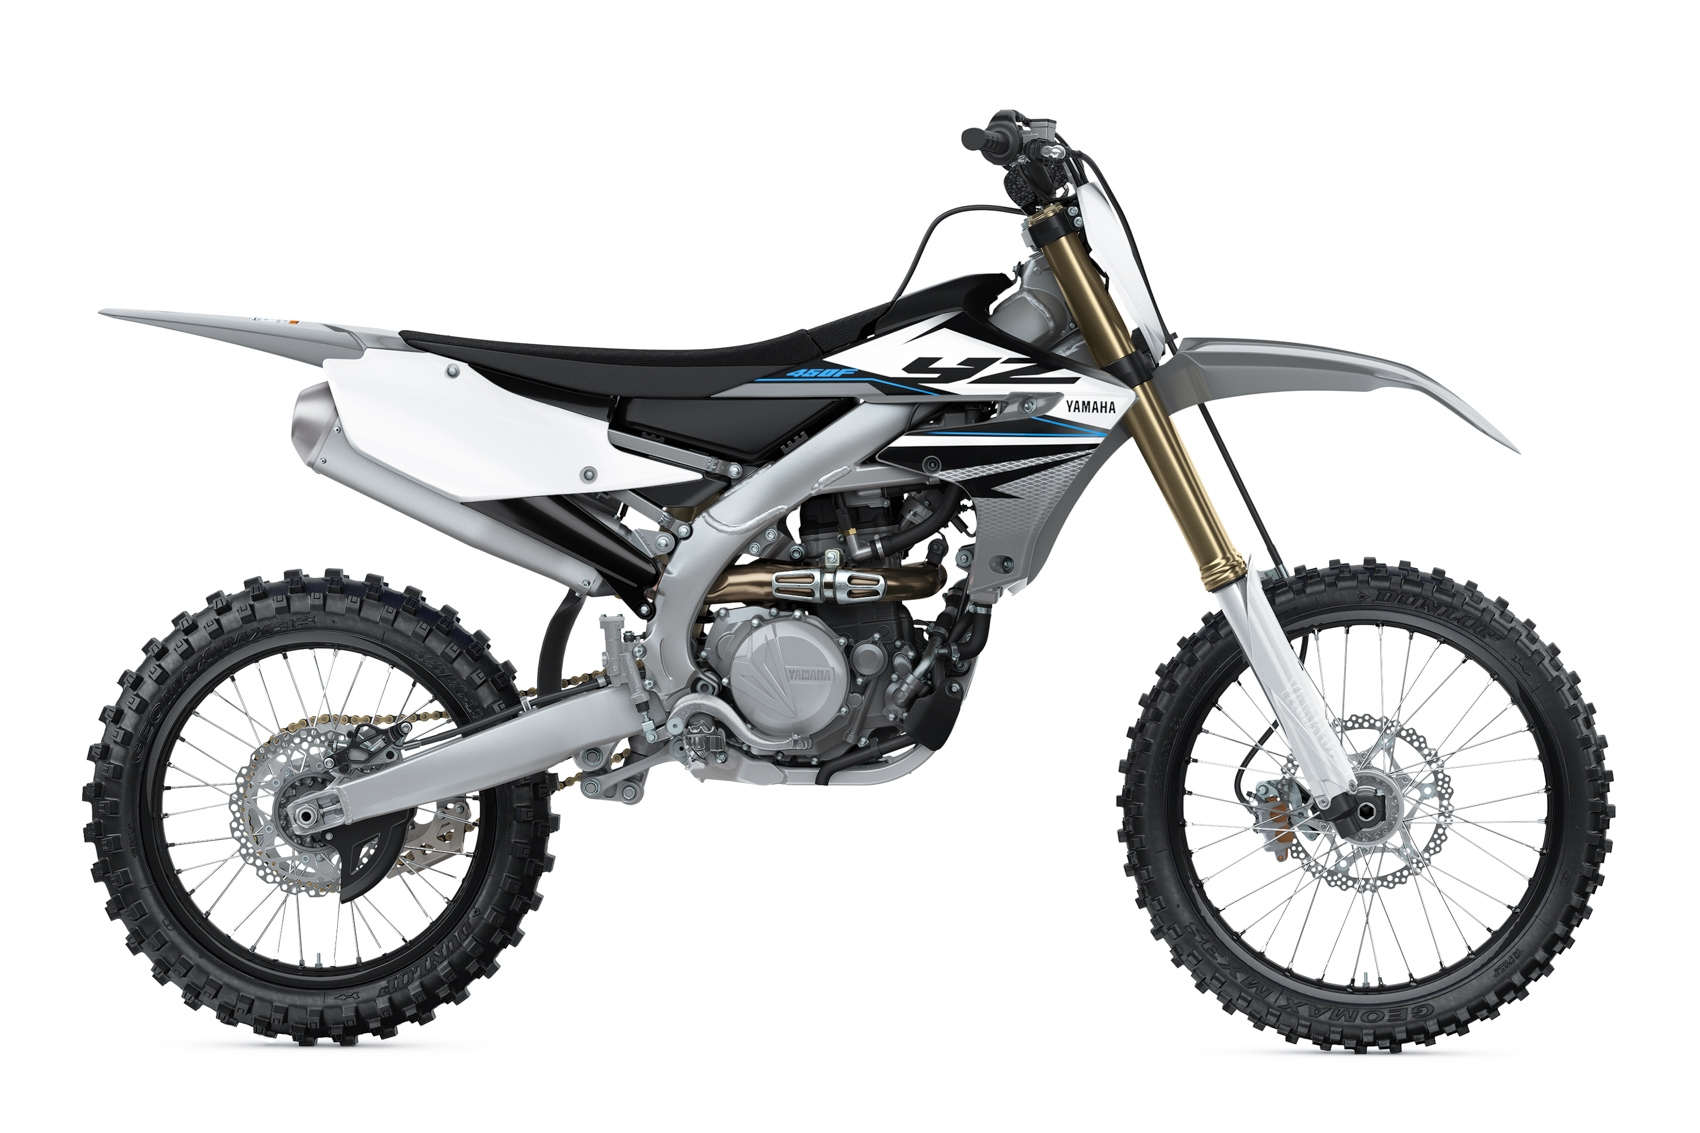 Yamaha Releases Motocross Amp Off Road Motorcycles